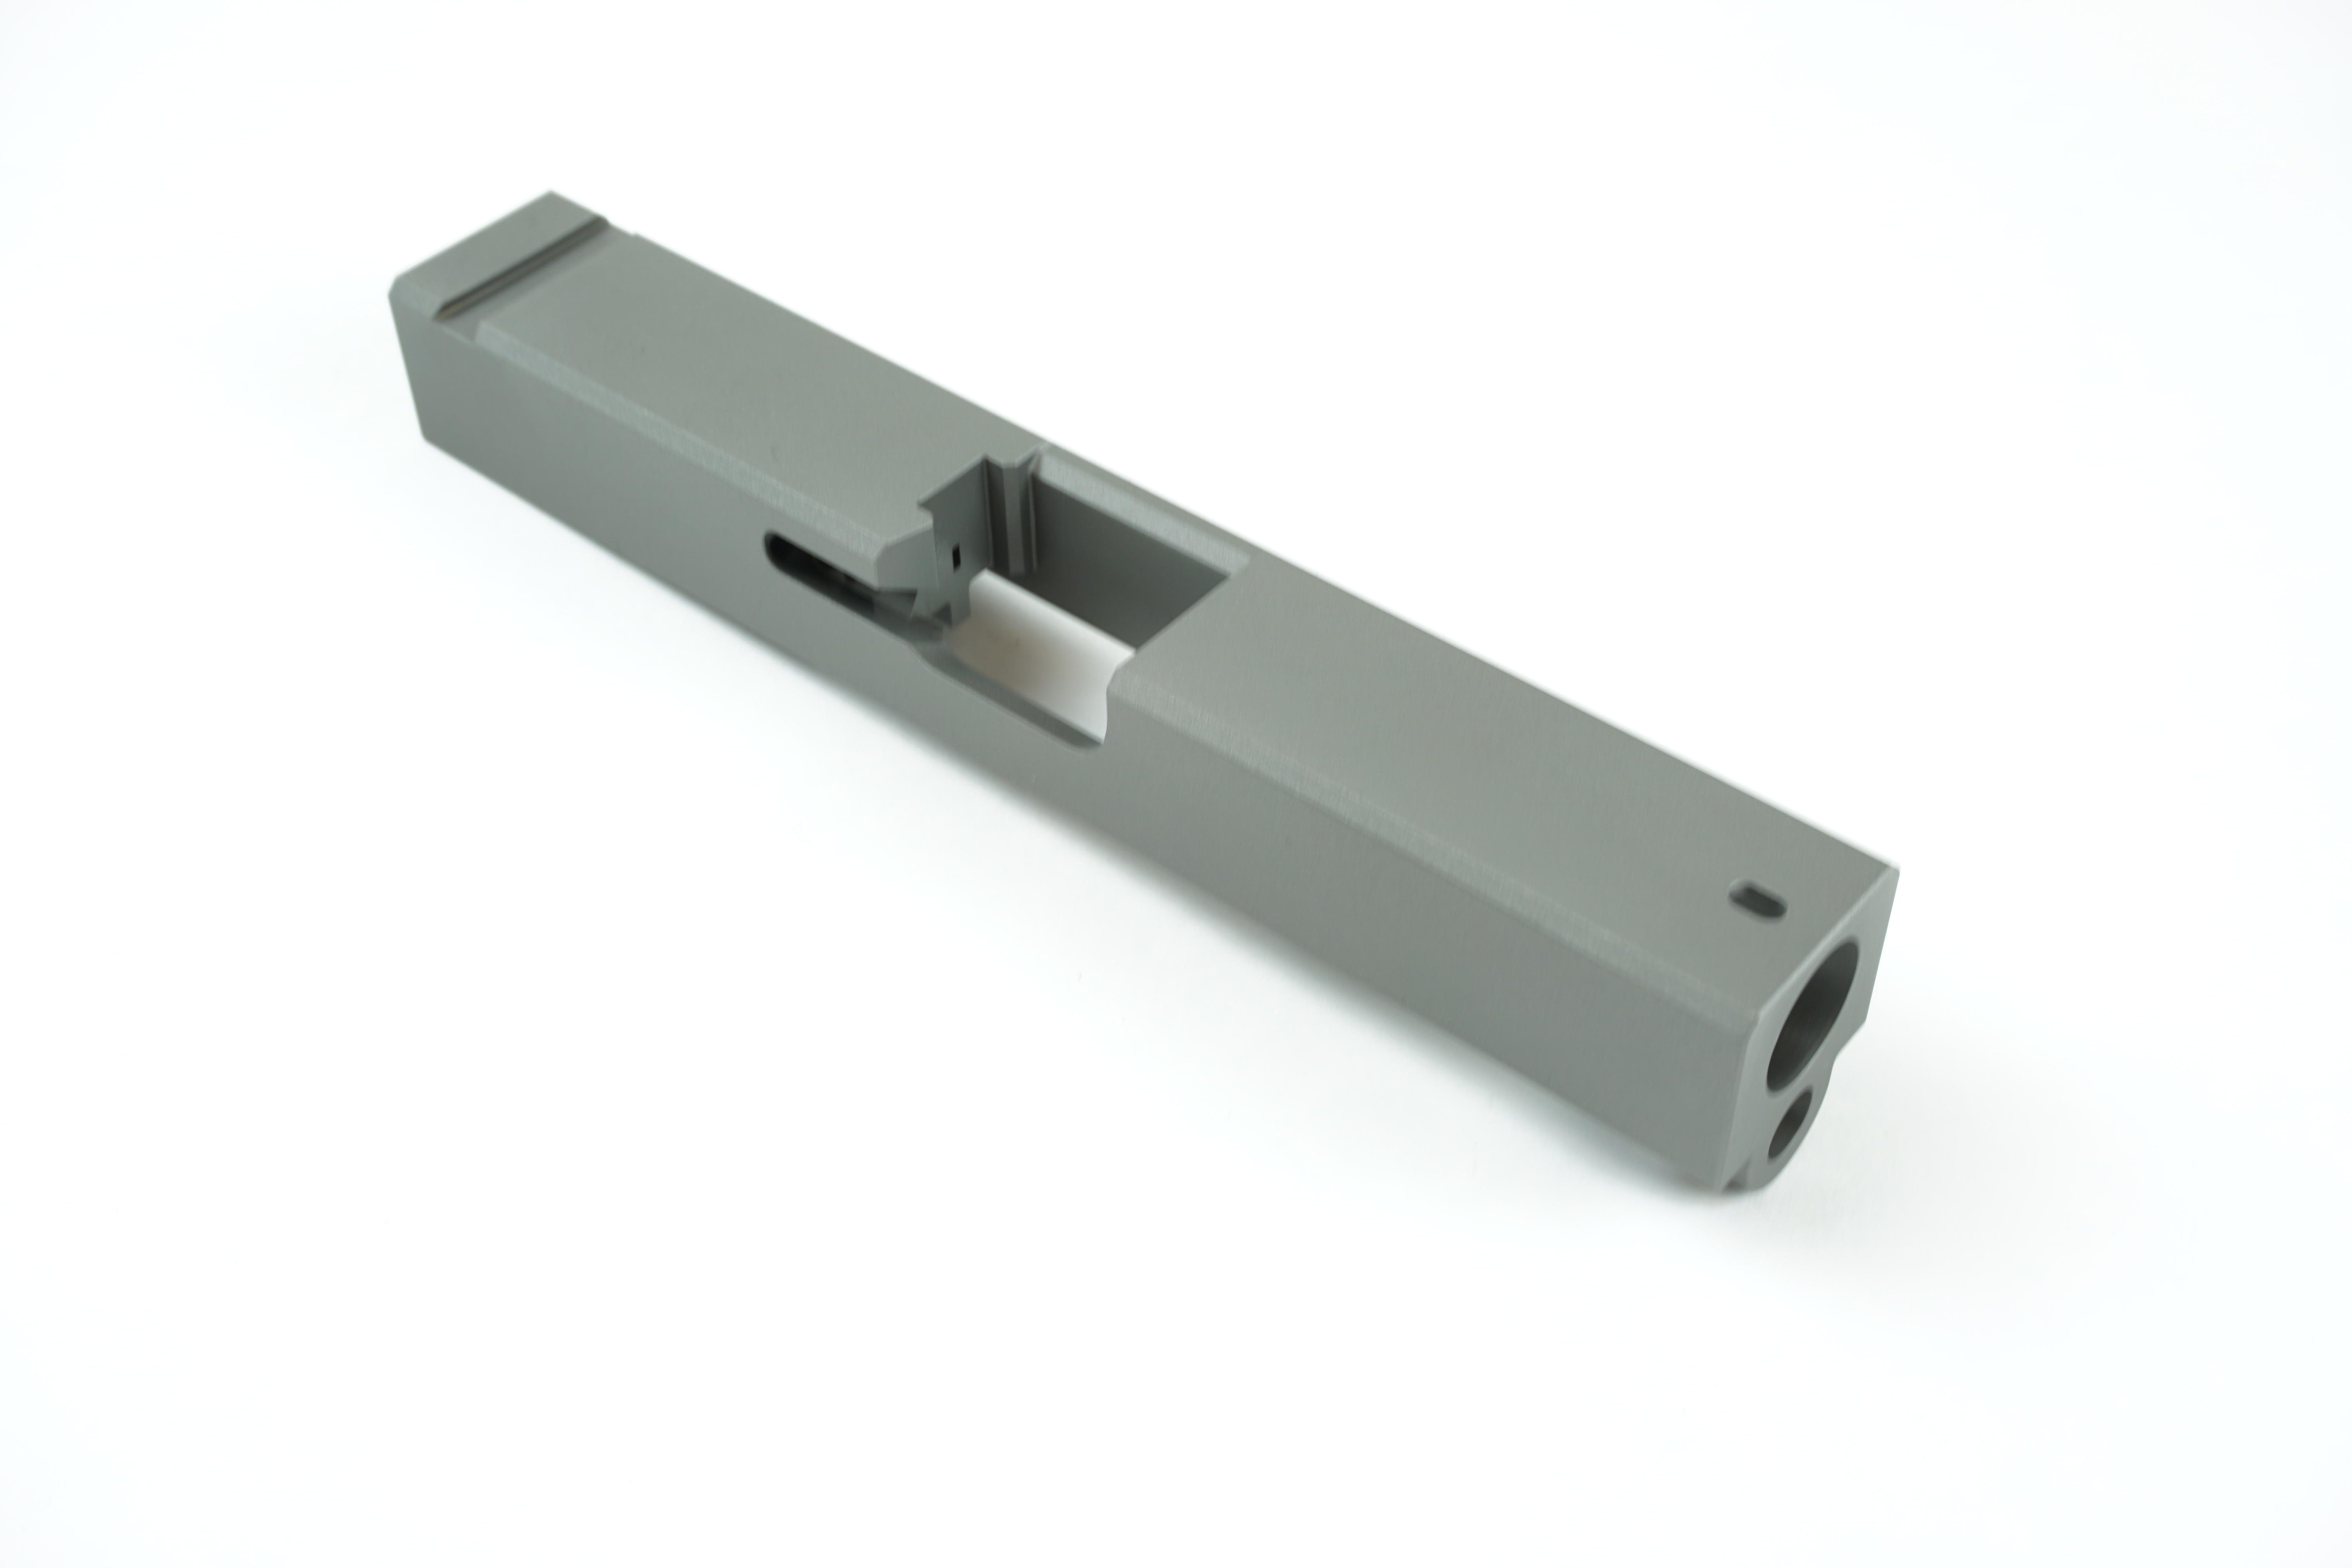 Gorilla Machining Glock 17 Slide Blank Stainless Steel 416R